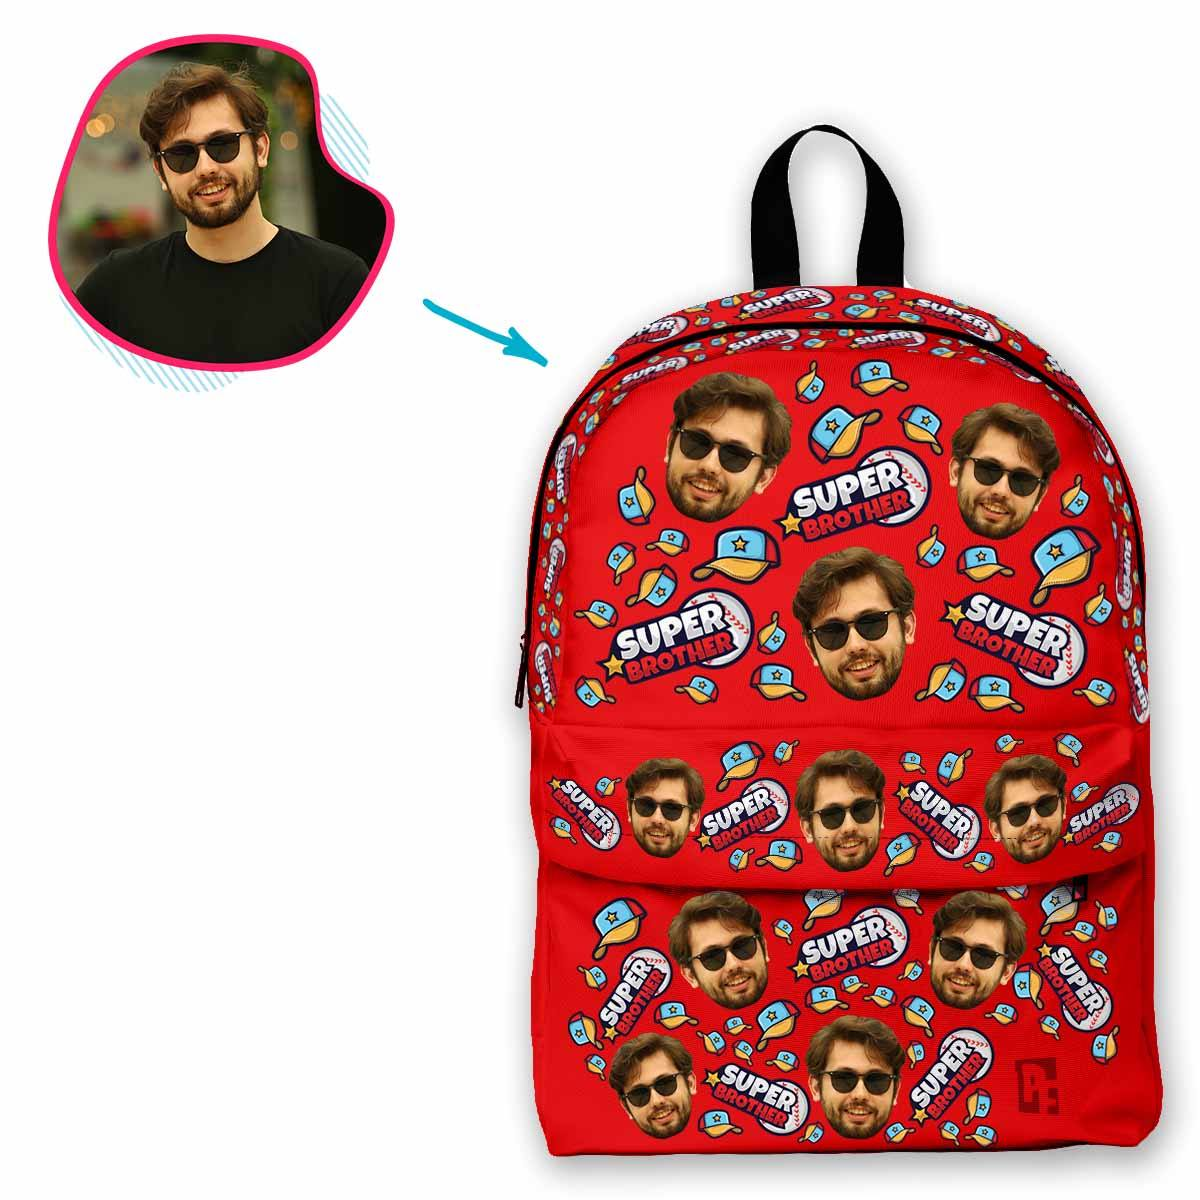 red Super Brother classic backpack personalized with photo of face printed on it